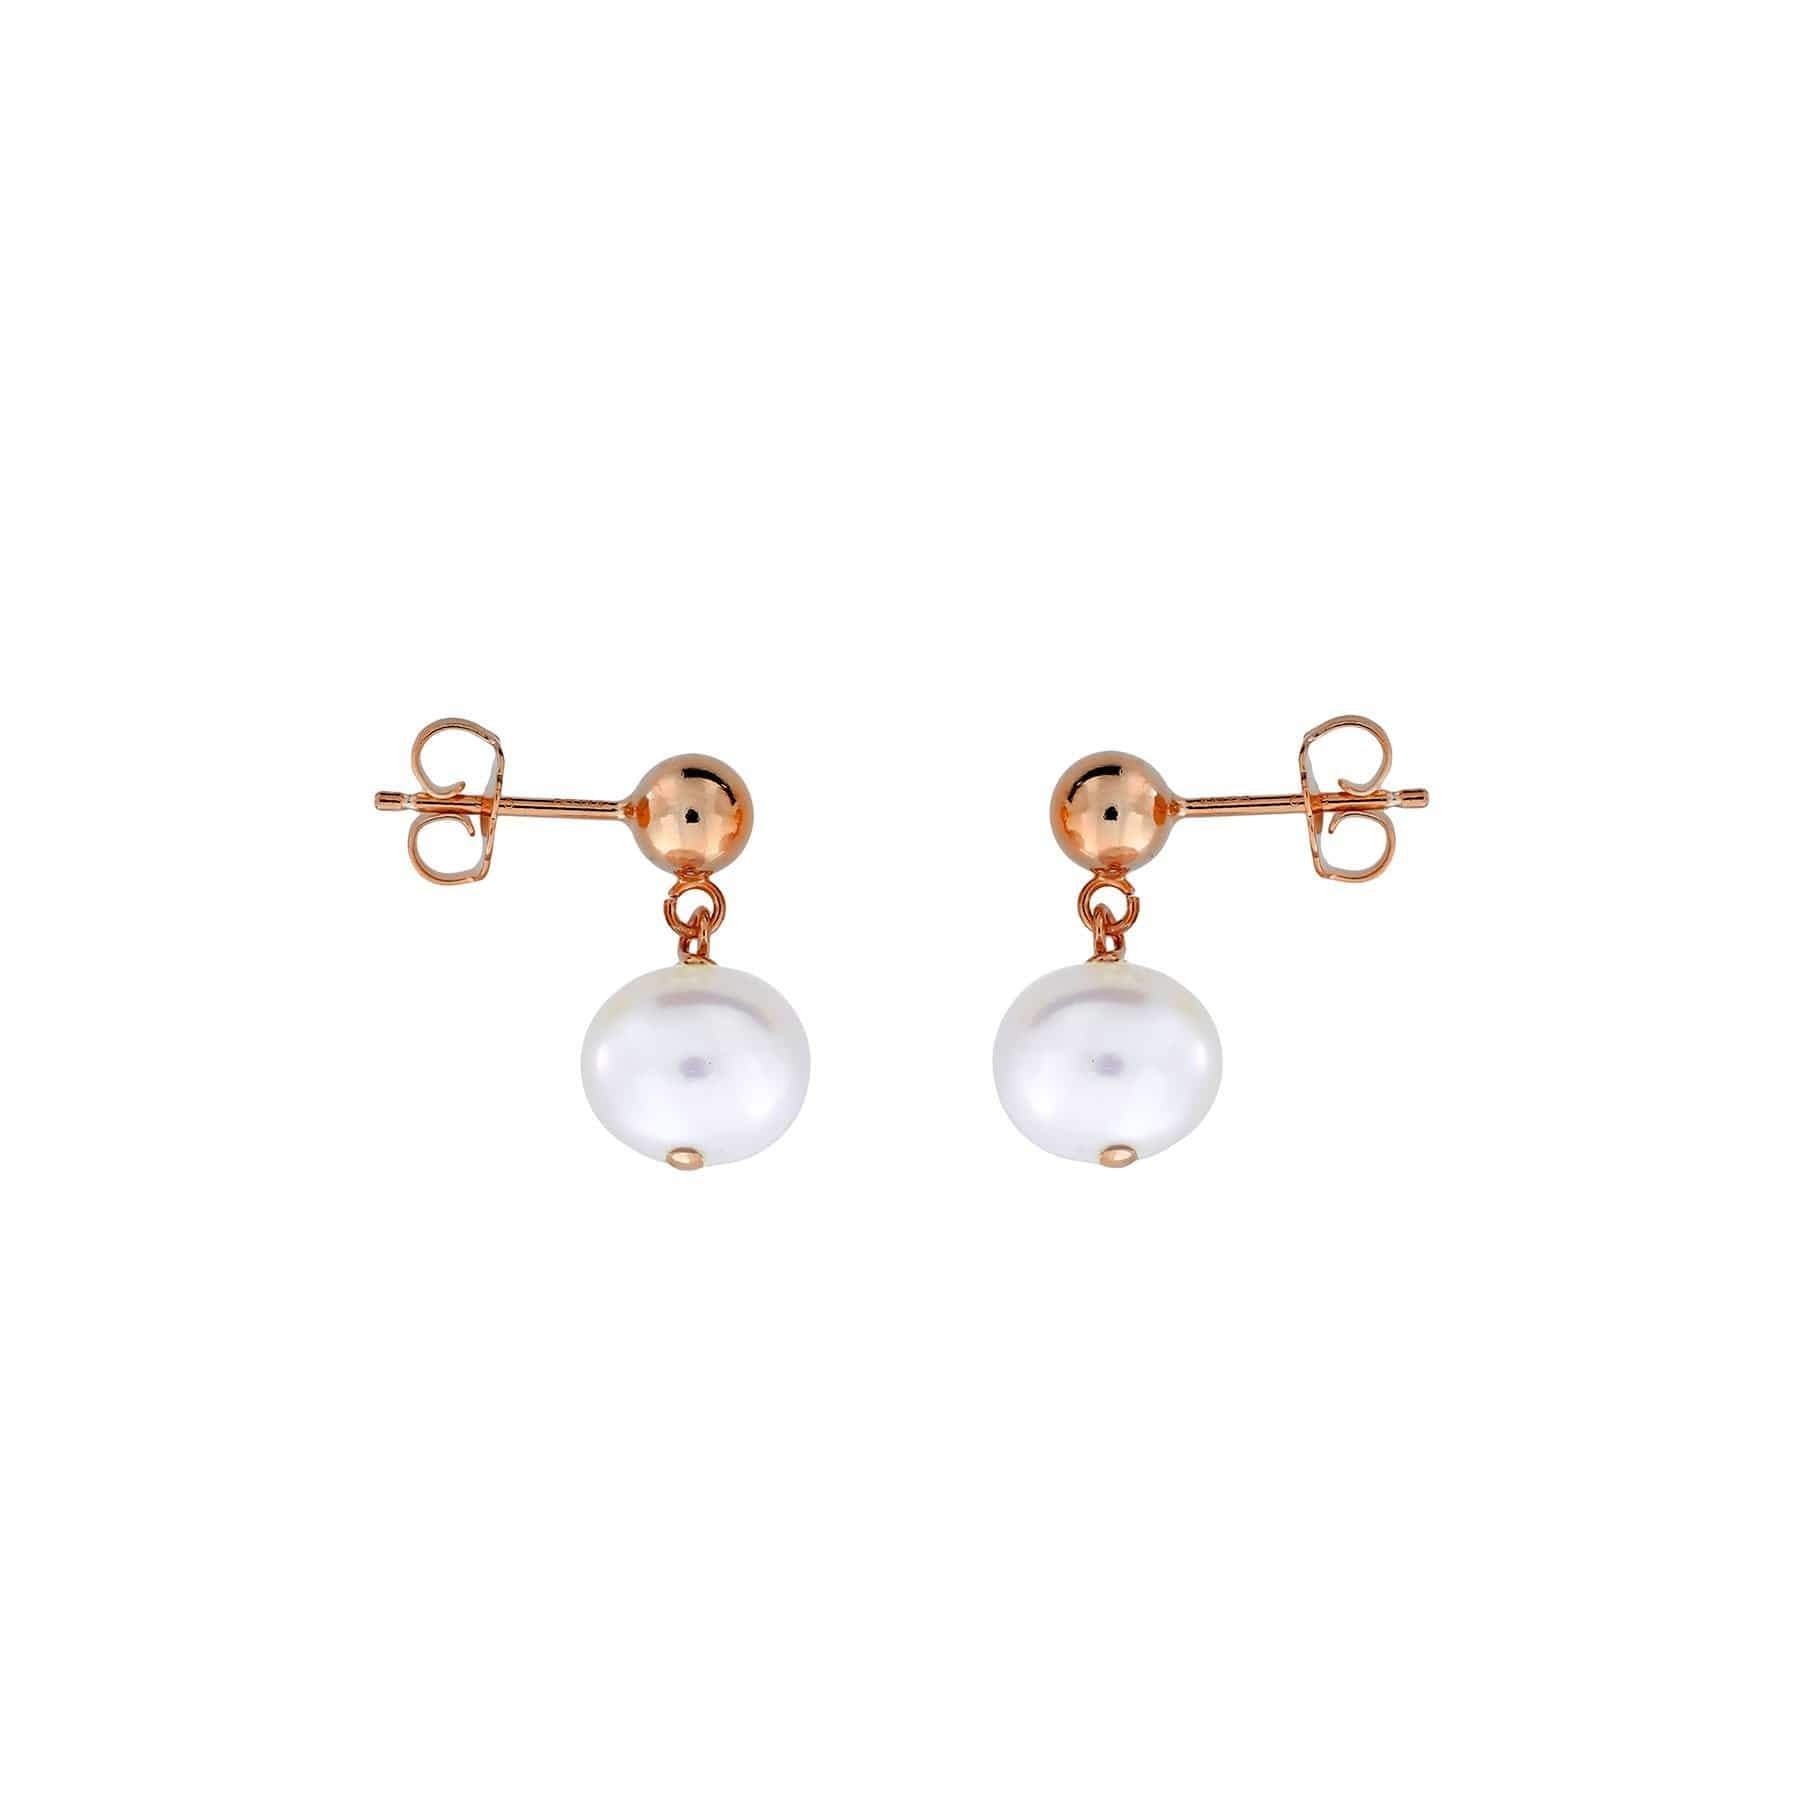 Silver Round Pearl Drop Earrings - 8mm